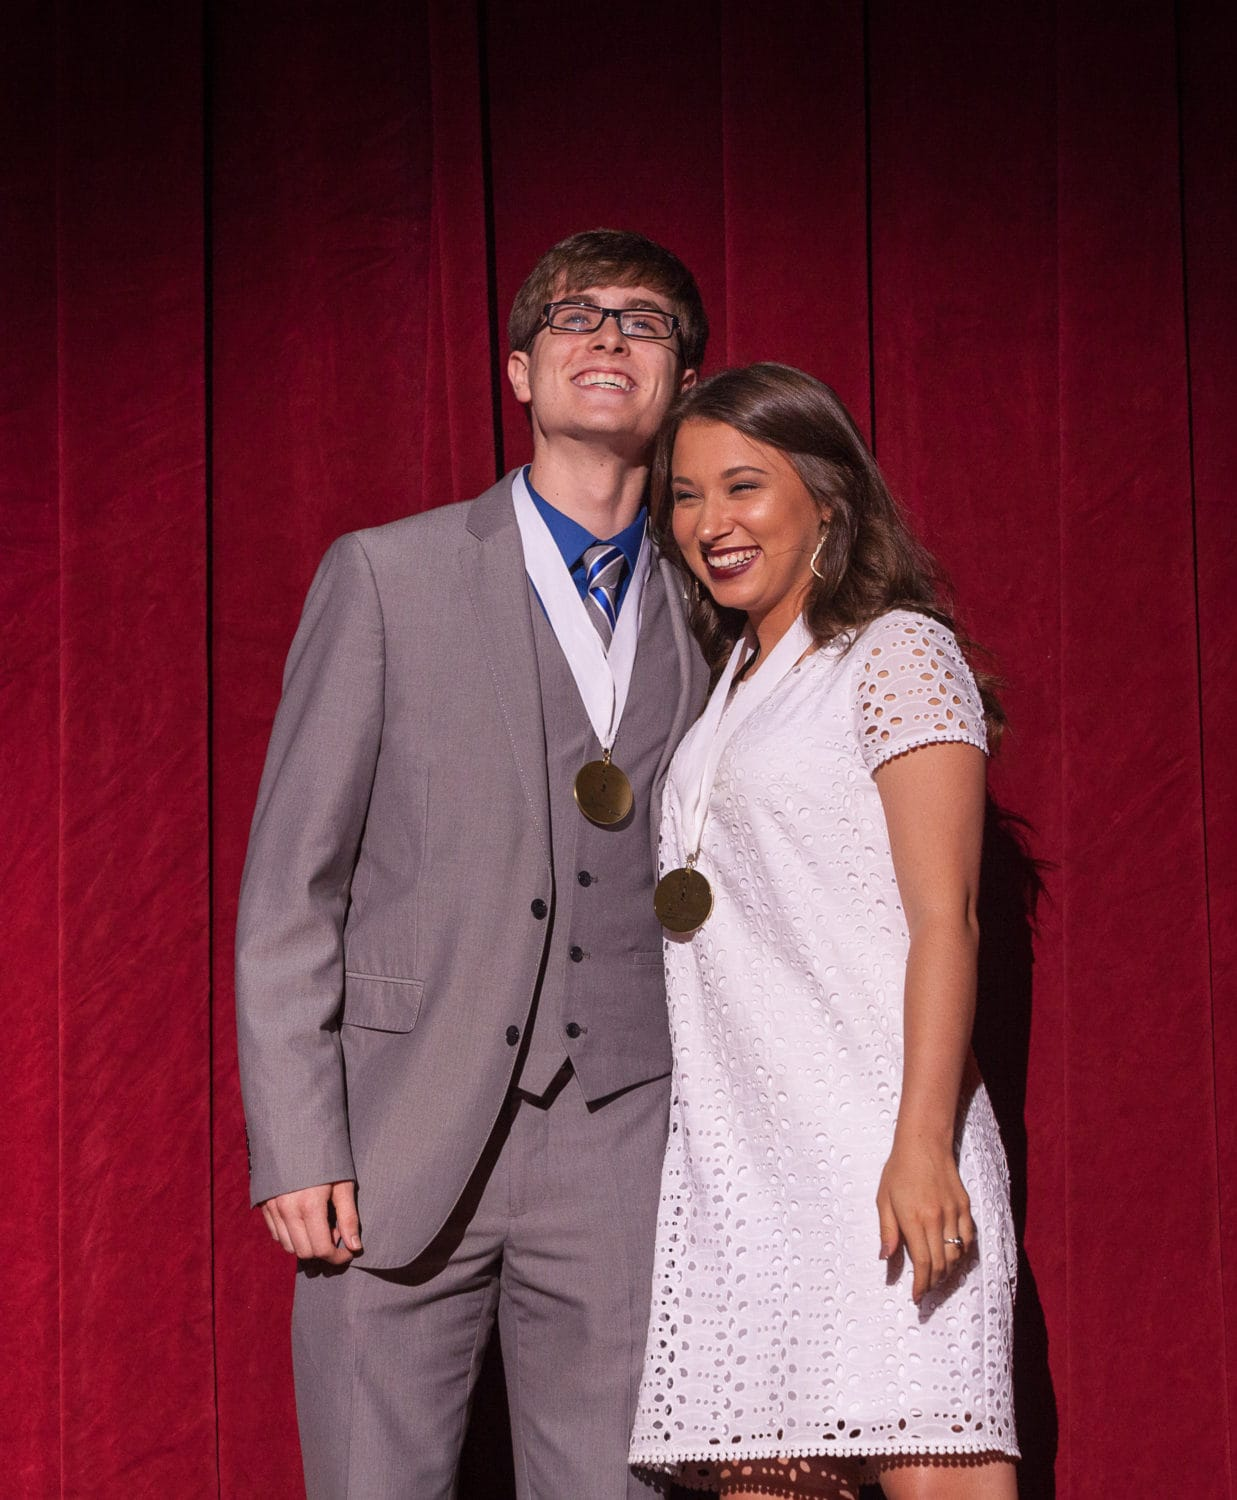 Winners of DSM High School Musical Theatre Awards Honored In NYC